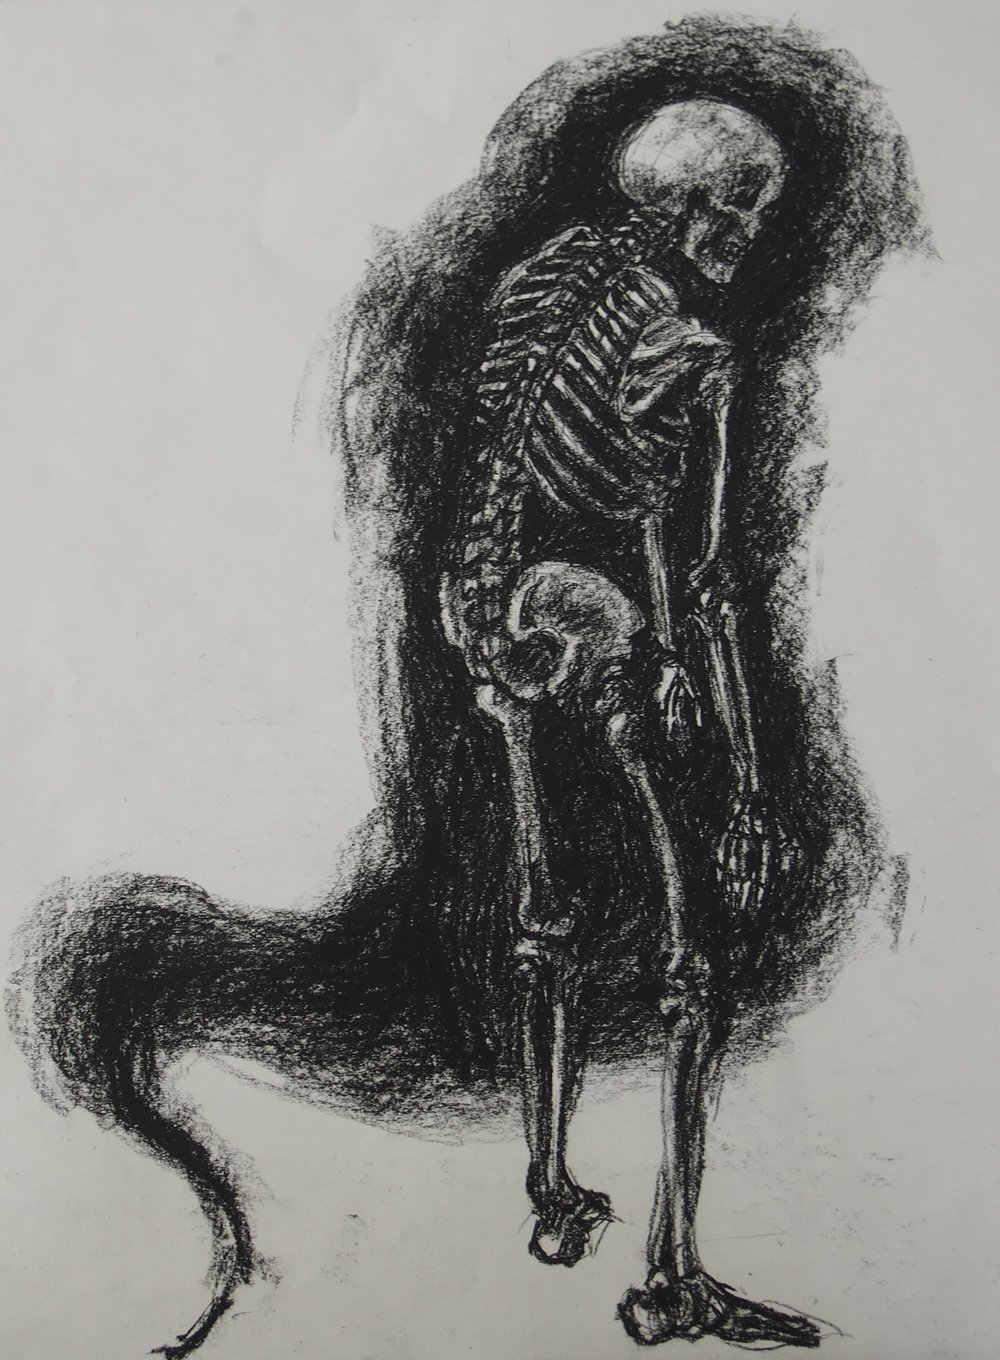 ANATOMICAL STUDY, Charcoal, 2018